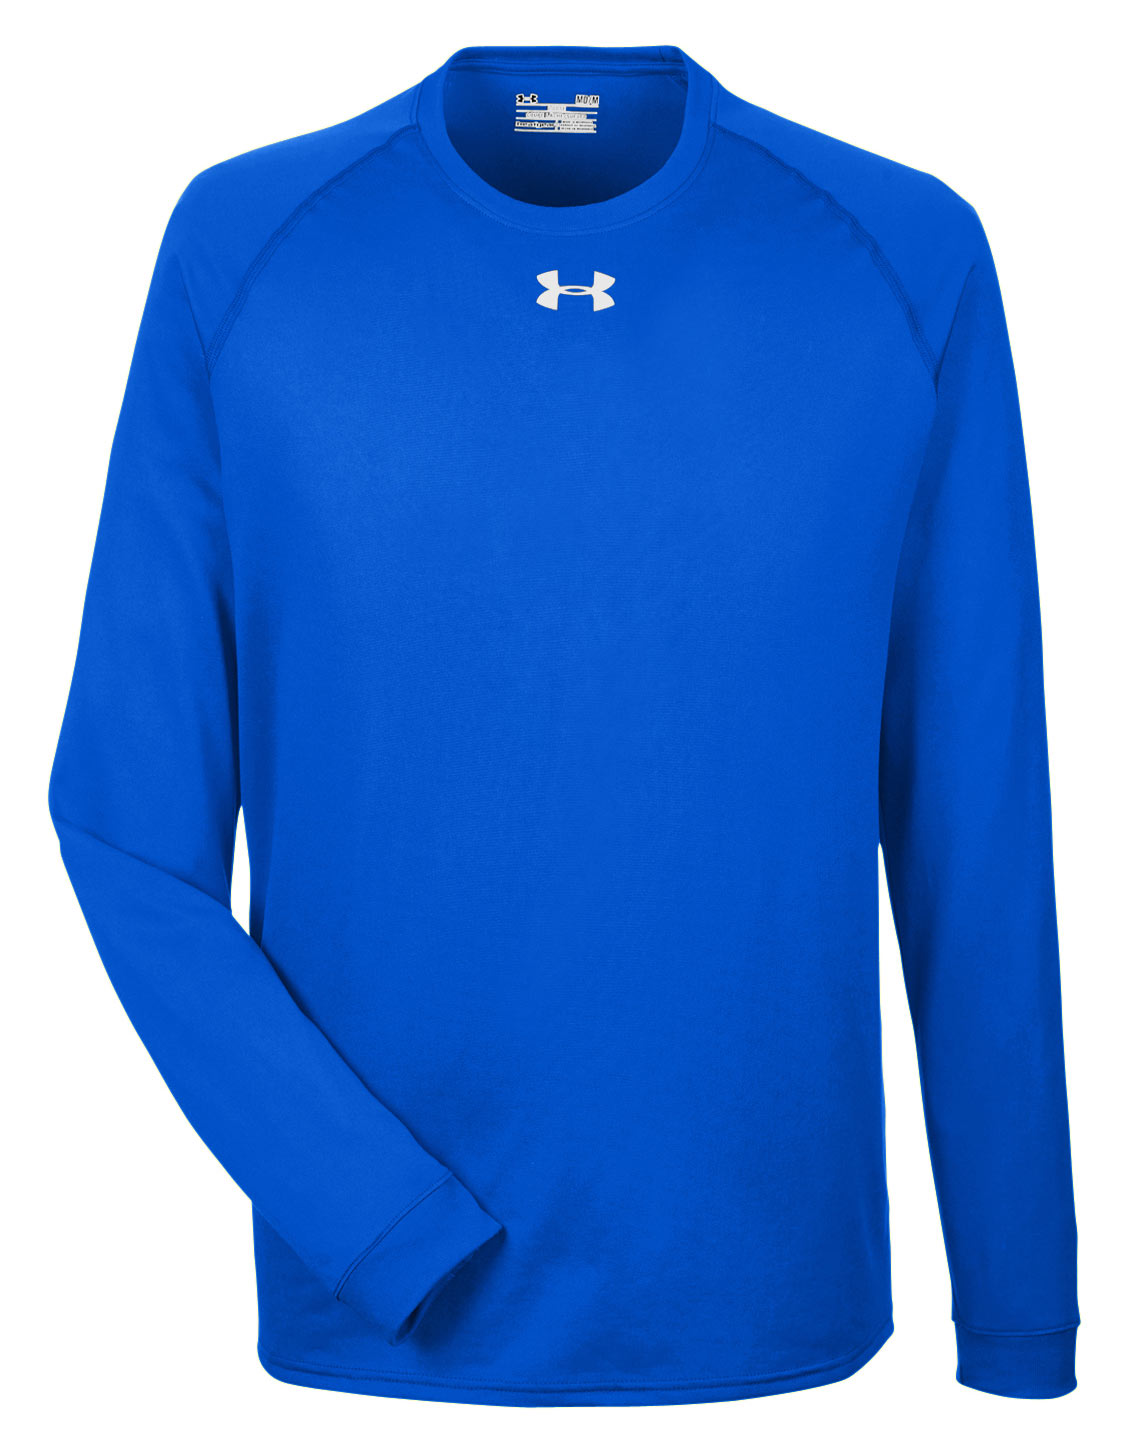 Under Armour Mens Long Sleeve Locker T-Shirt